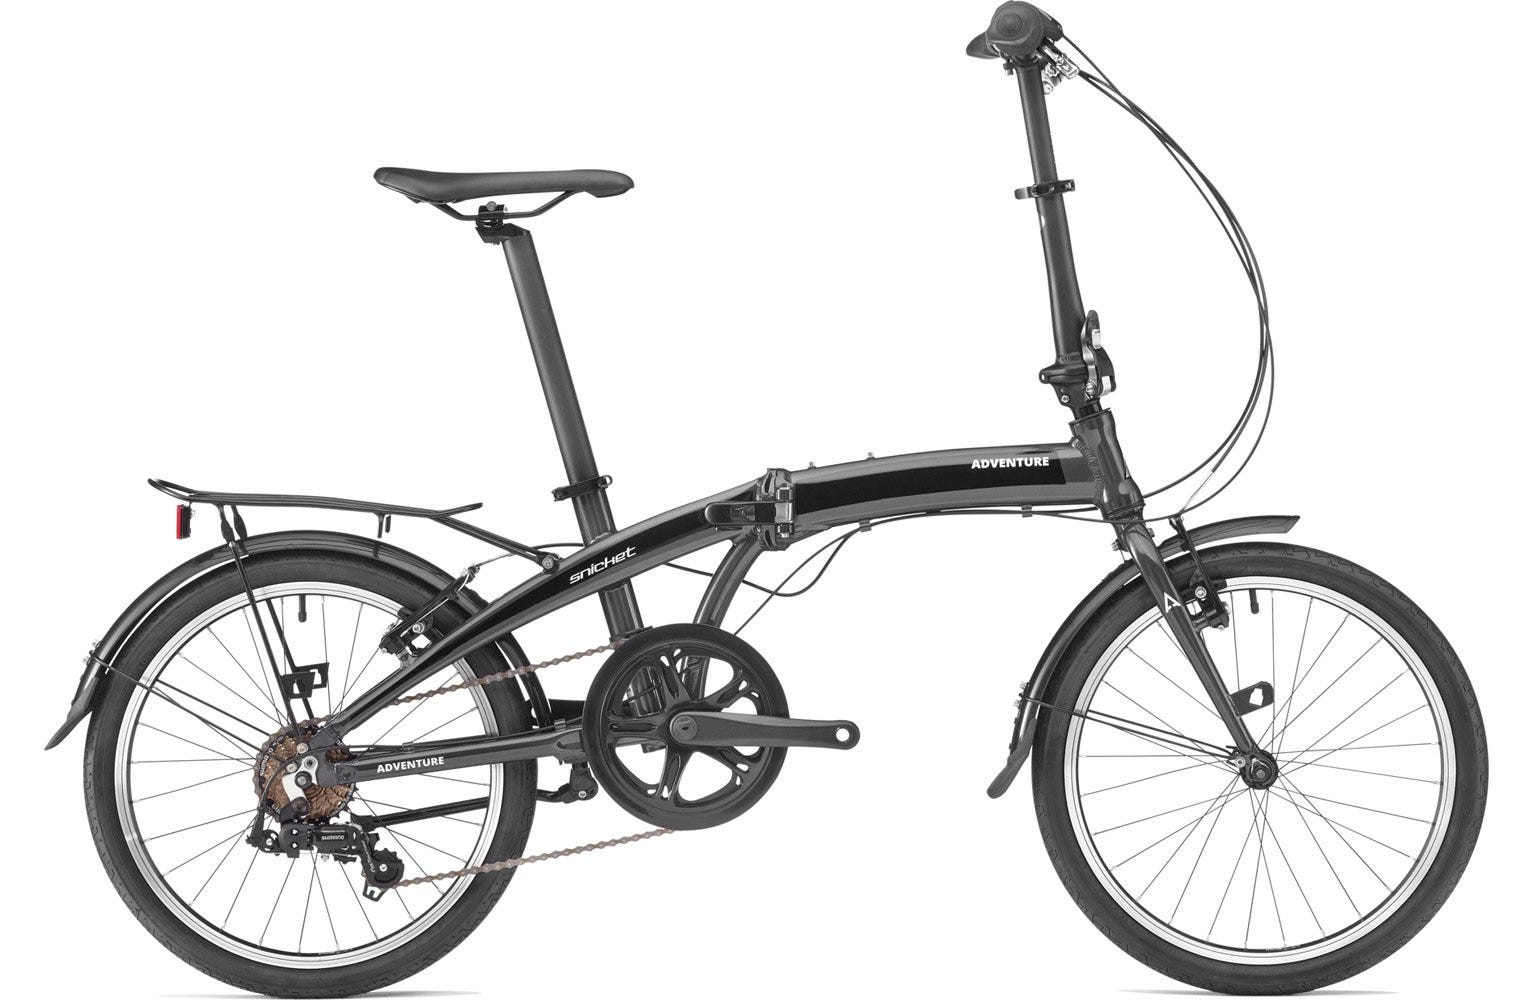 Adventure Snicket Folding bike Ex Display